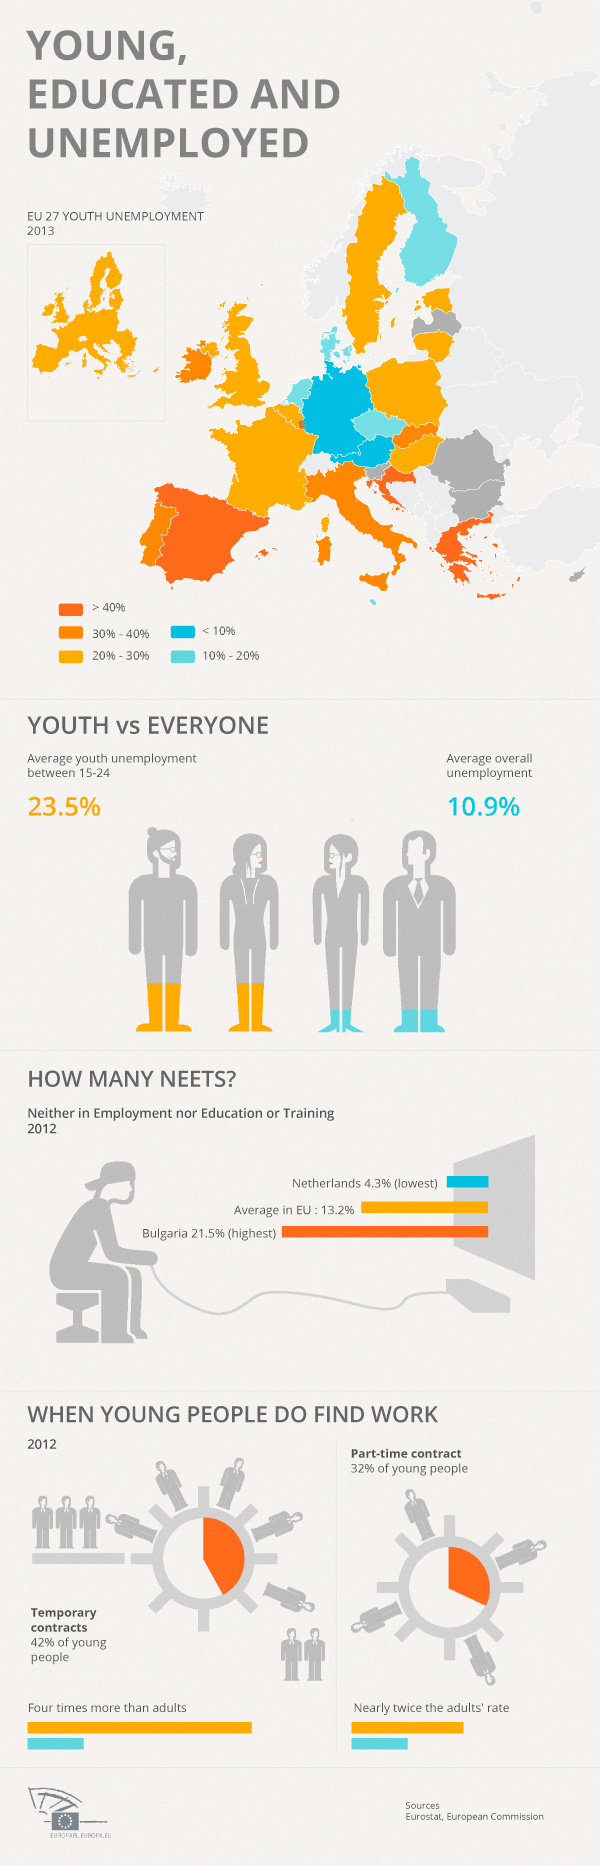 Infographic on youth unemployment